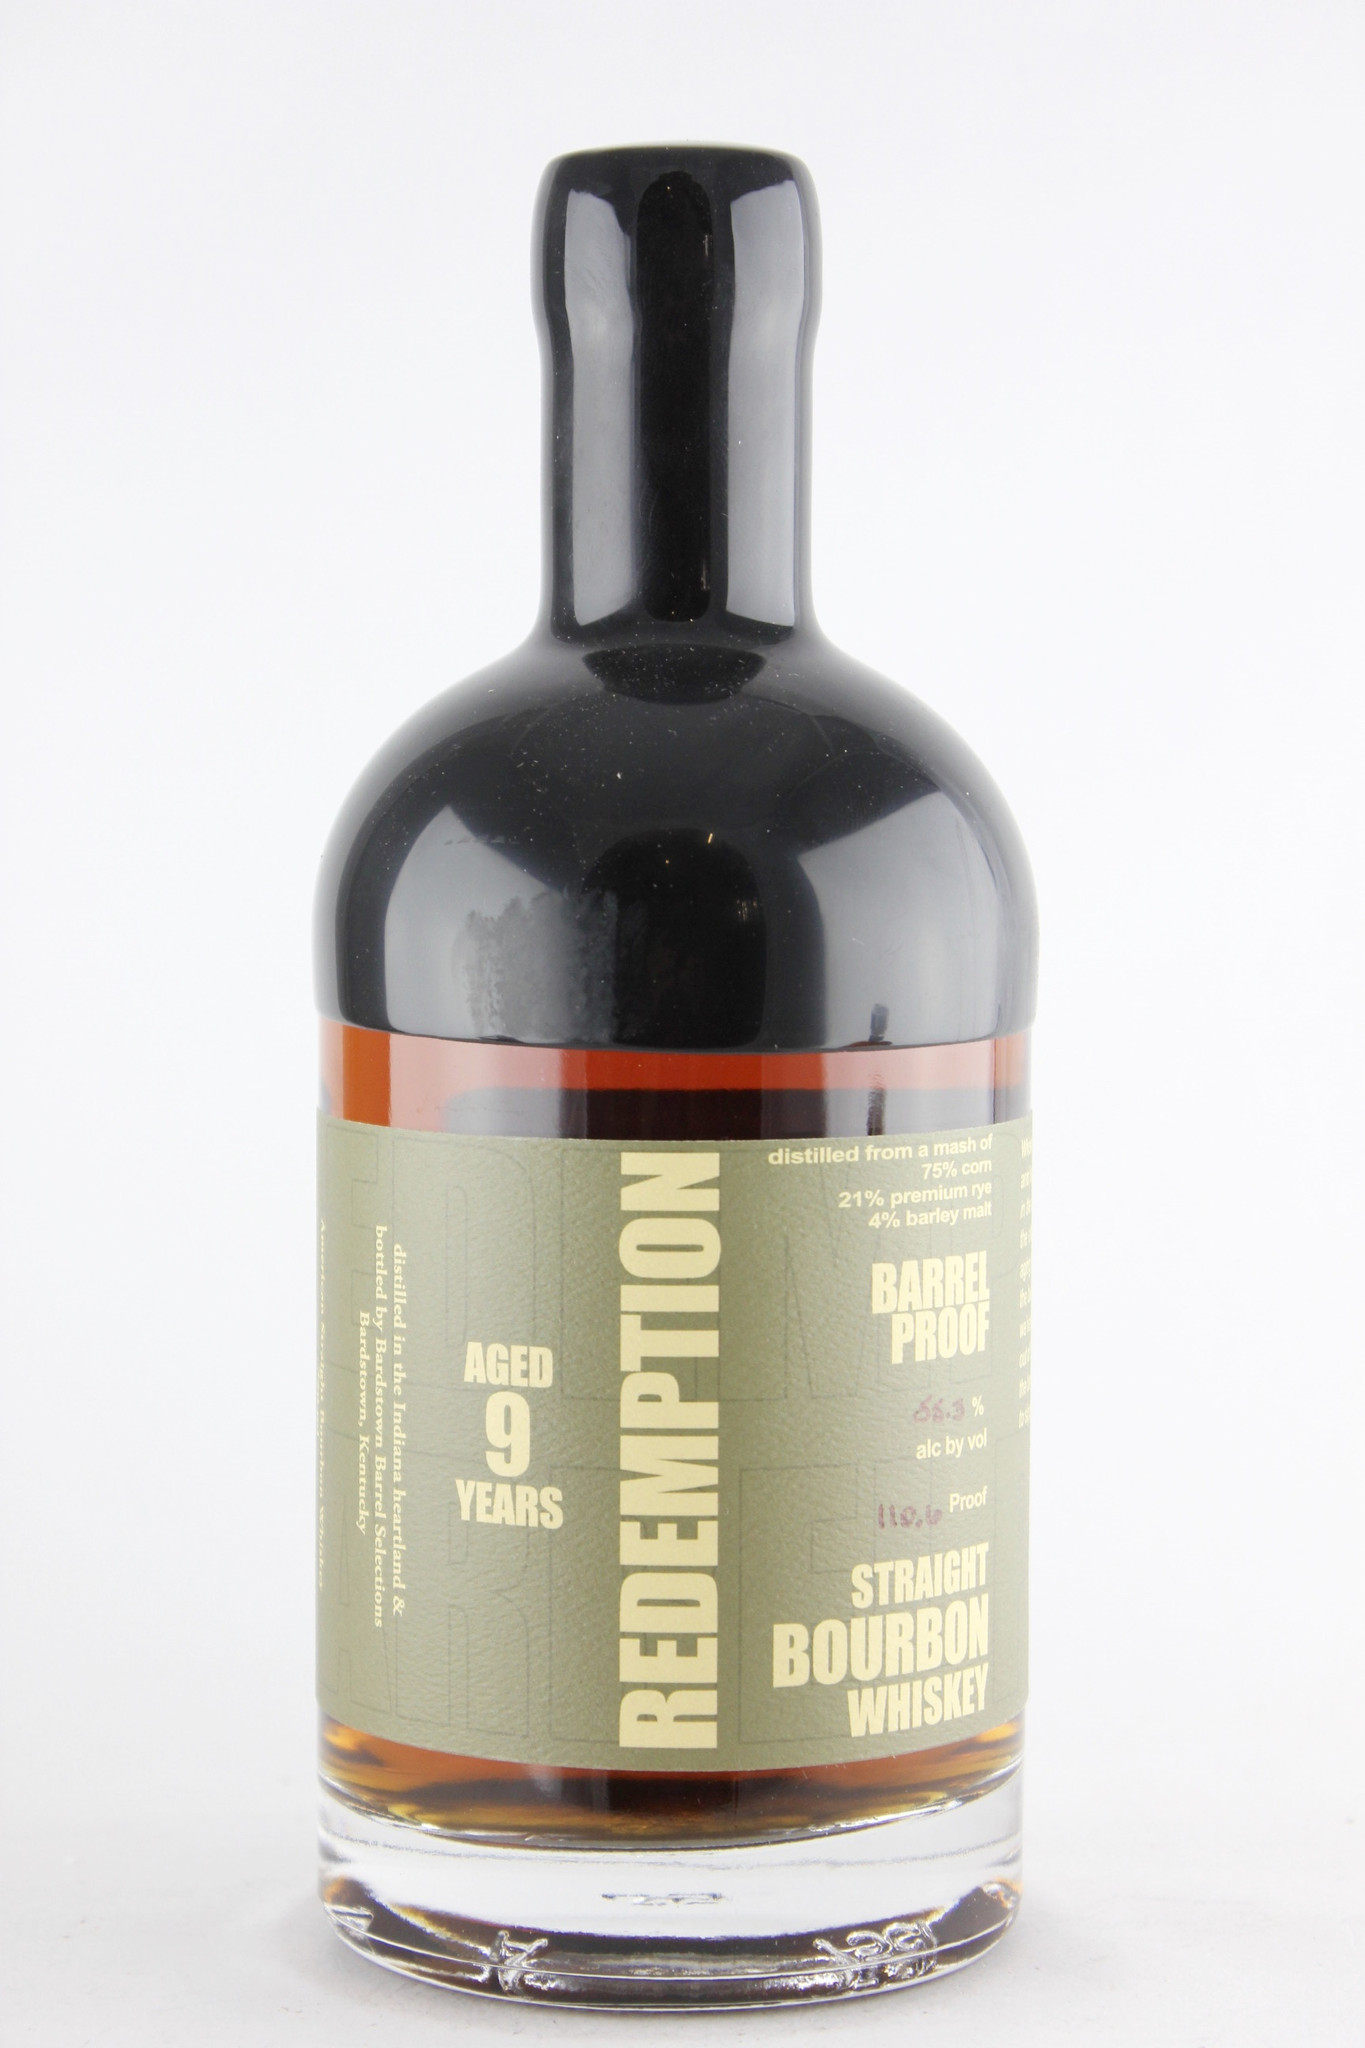 Redemption Aged Barrel Proof Straight Bourbon 9 Years Old